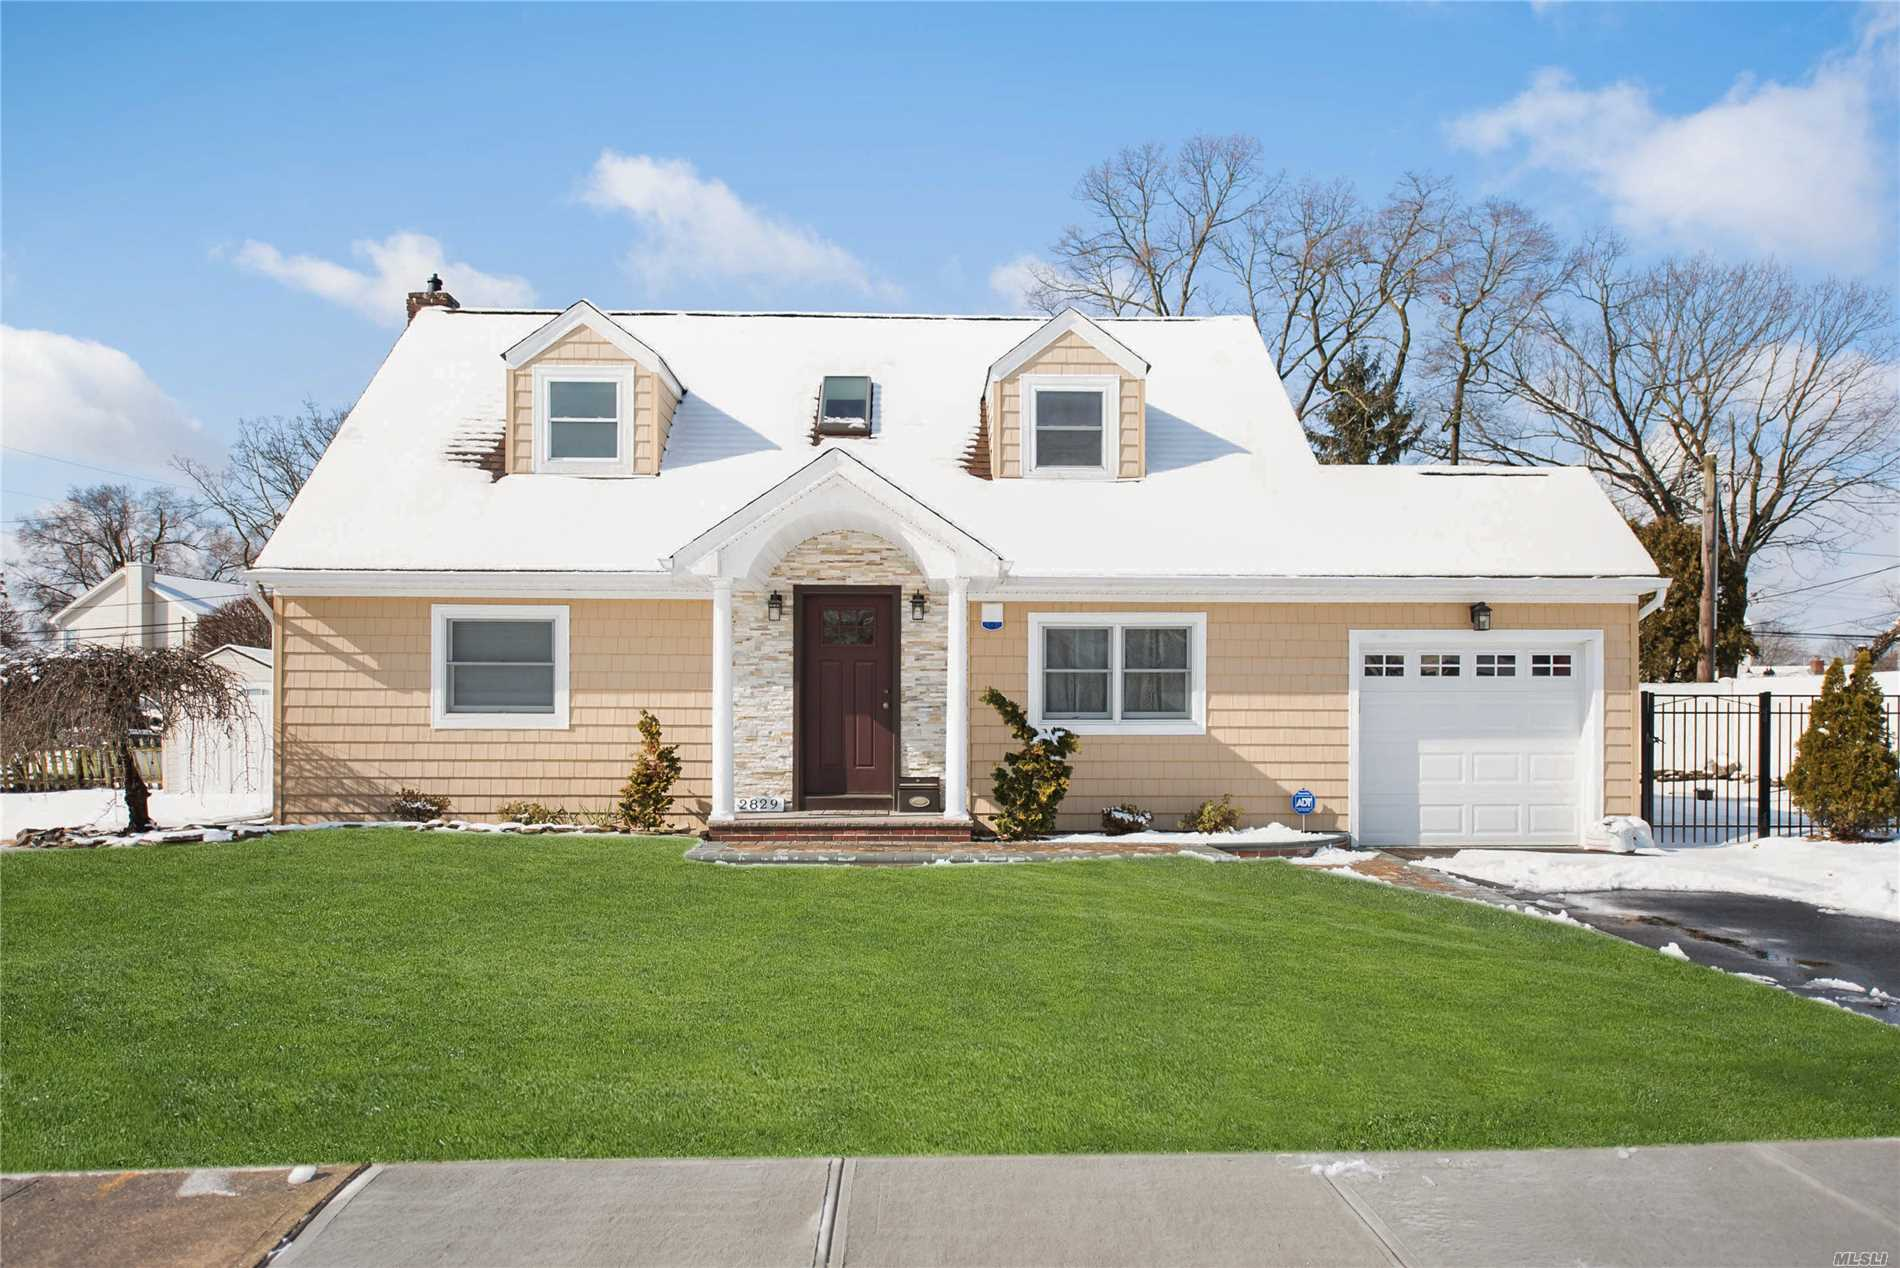 Many New Updates - New Roof/Siding/Fence/Portico/Concrete Patio/Garage Door/Tankless Burner/Most First Floor Windows Are New Andersons/Sliding Door. 4 Bedrooms, Master Bdrm On 1st Floor, Gleaming Hardwood Floors, Full Finished Basement With High Ceiling. Saw Mill Road Elem, Grand Avenue Ms, Mepham Hs. Close To Shopping And Parkways......